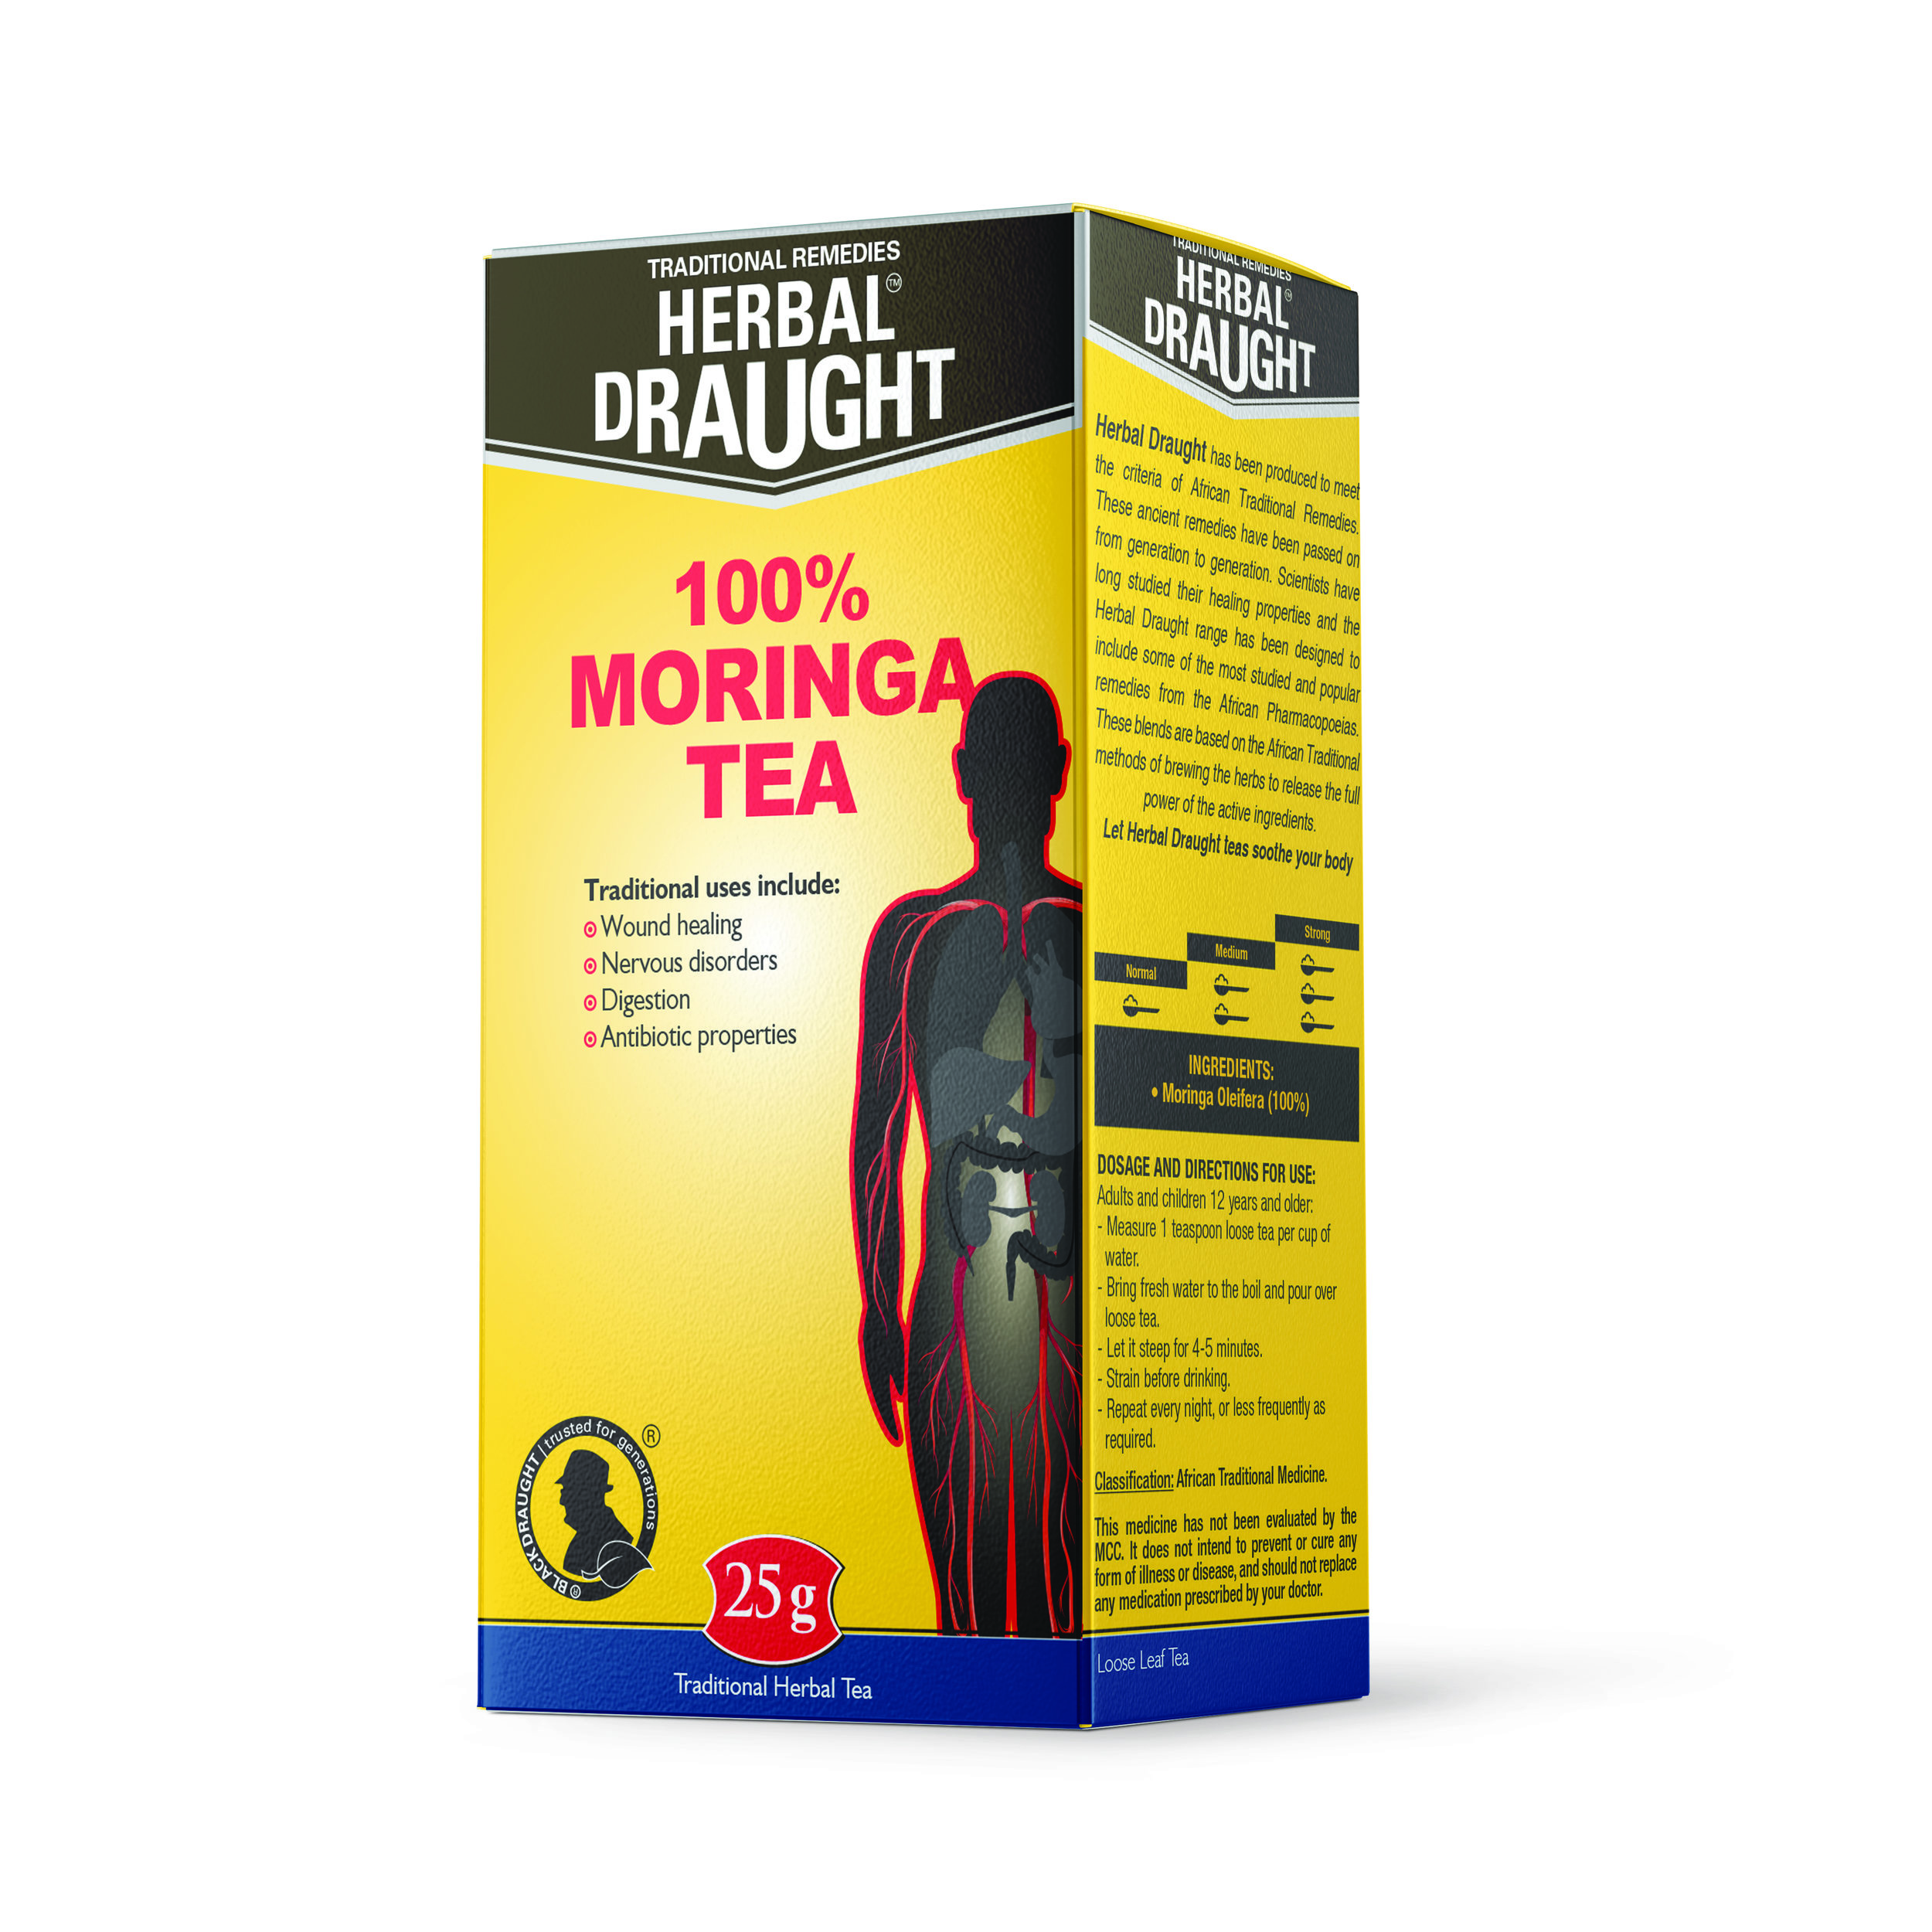 30646_BLACK DRAUGHT_MORINGA TEA.jpg